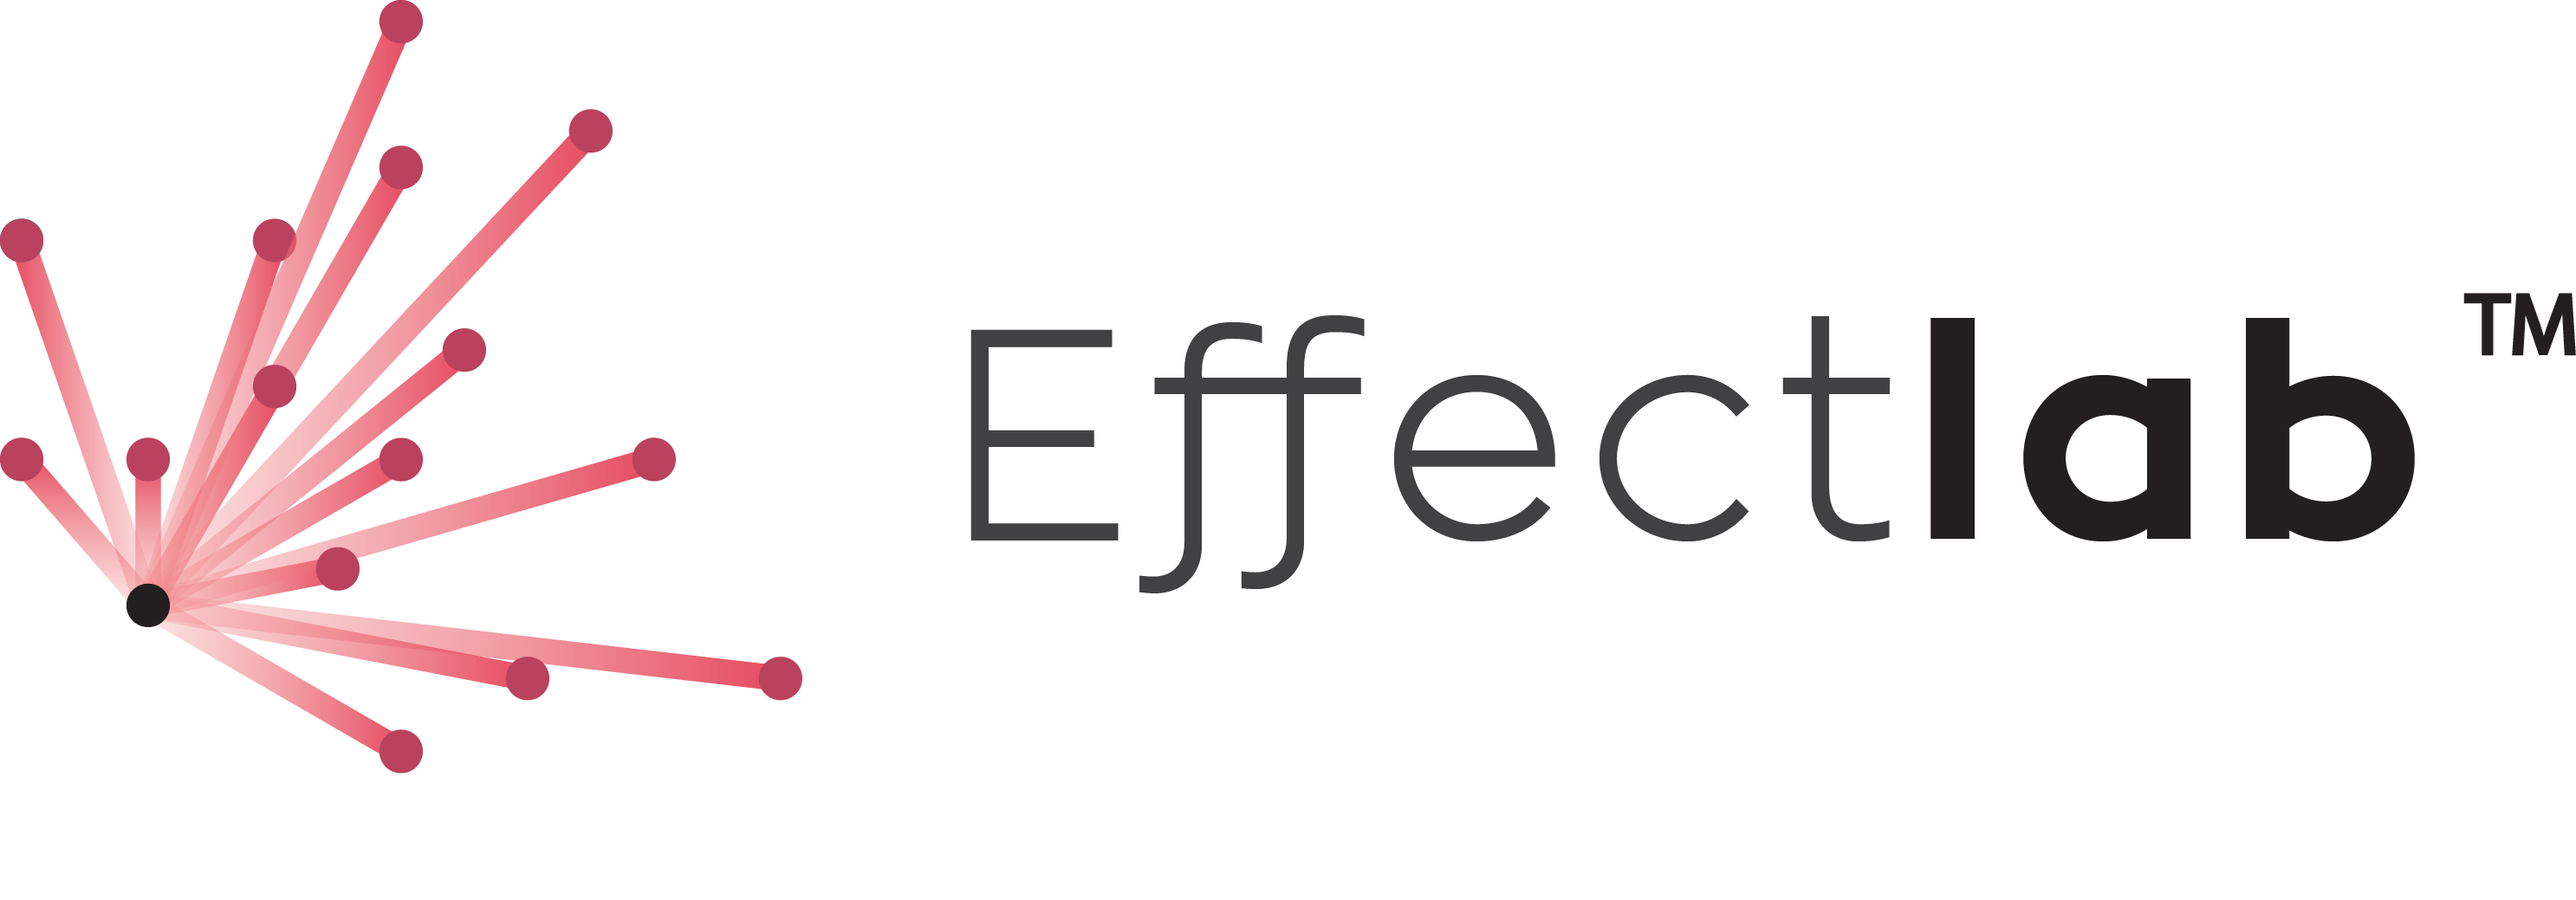 effect-lab__logo-original-png.png